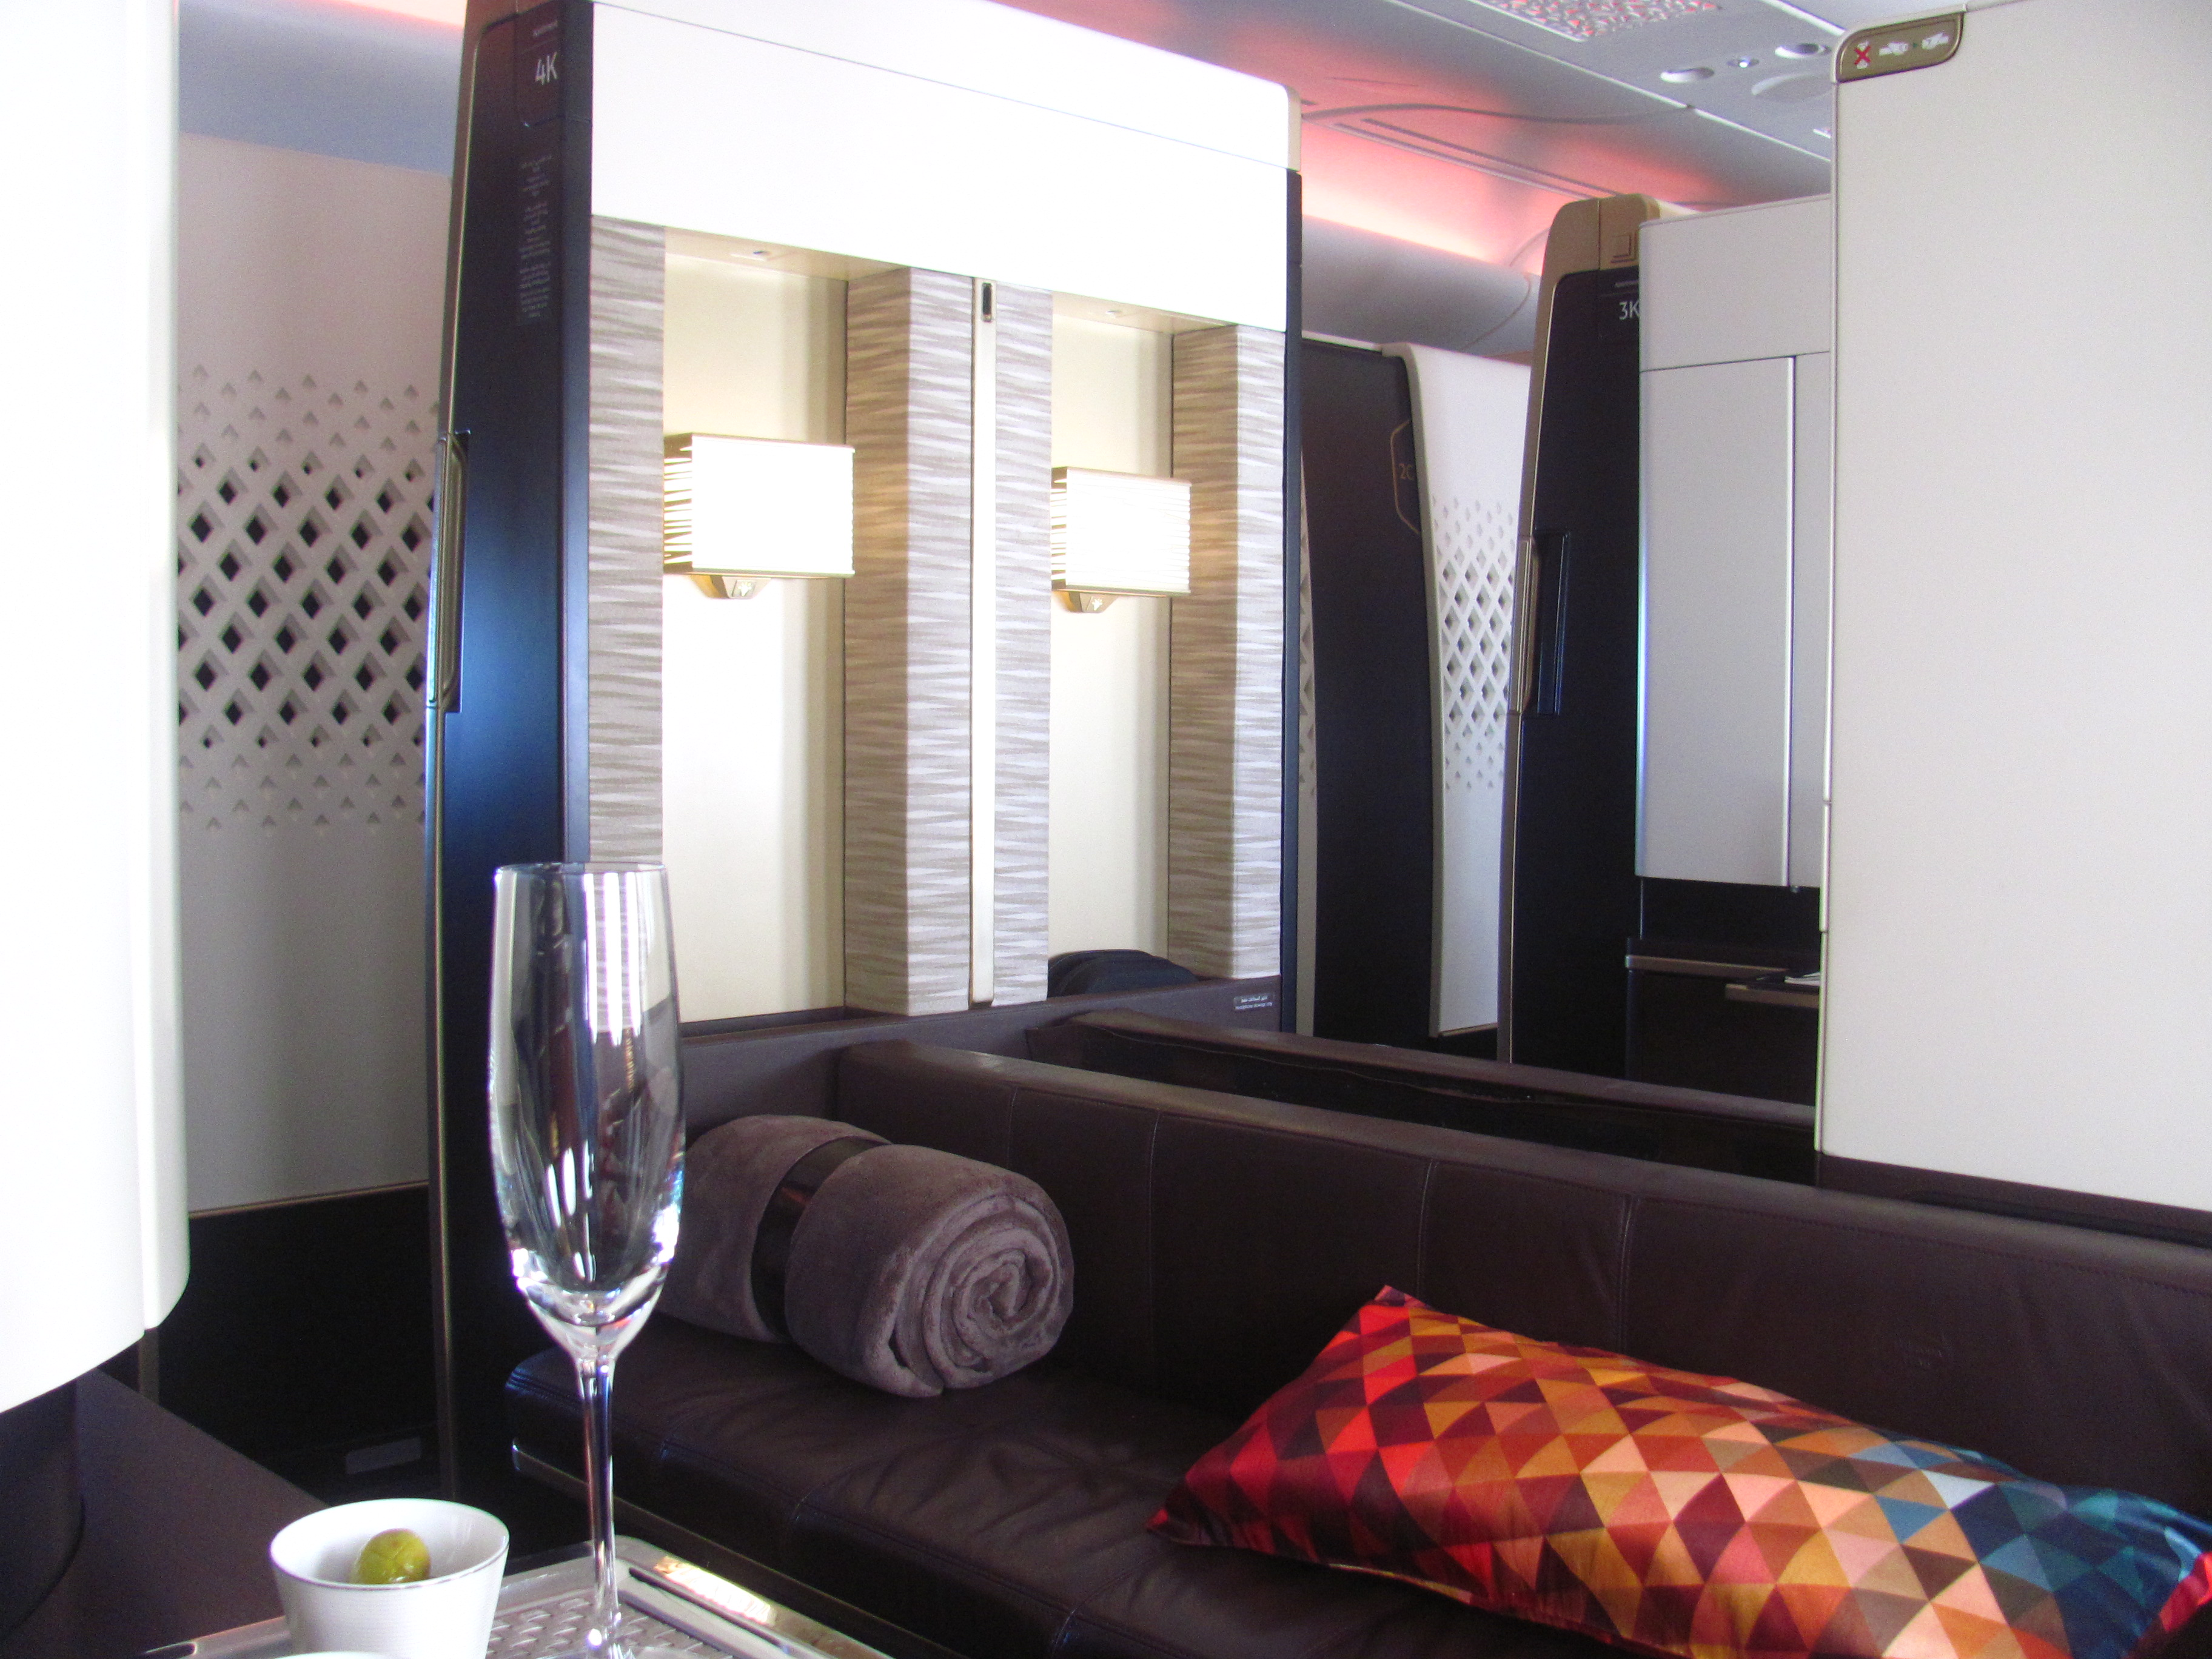 Pic etihad airways a380 first class apartment 4k may 2015 - Since We Were A Couple Travelling Together We Snagged Seats 3k And 4k This Is Very Important Out Of All 9 First Class Apartments There Are Only 2 Pairs